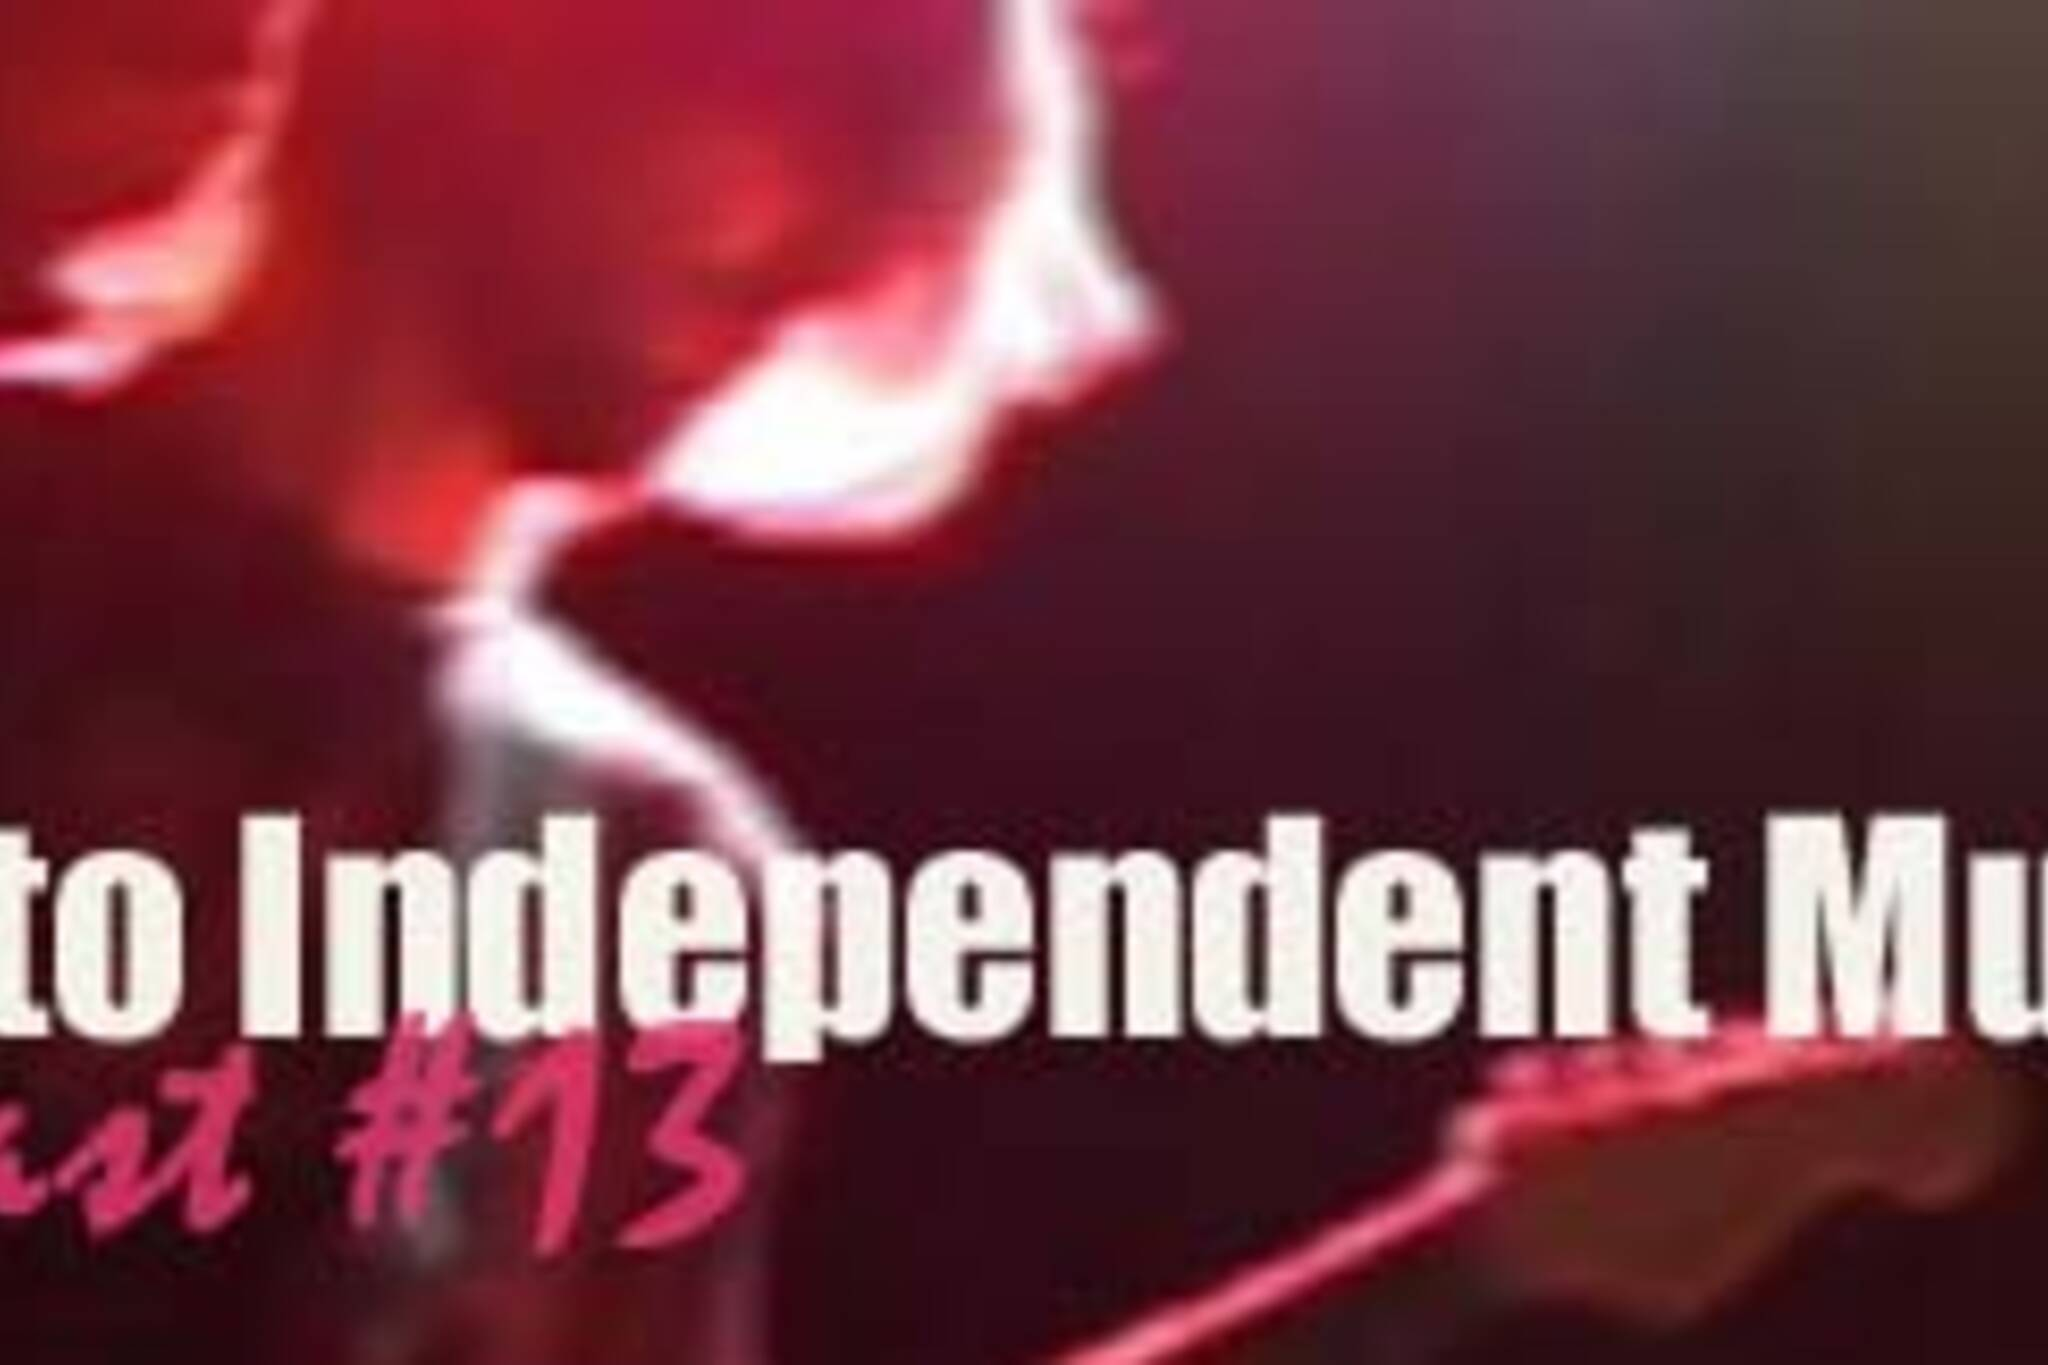 Toronto Independent Music Podcast #13